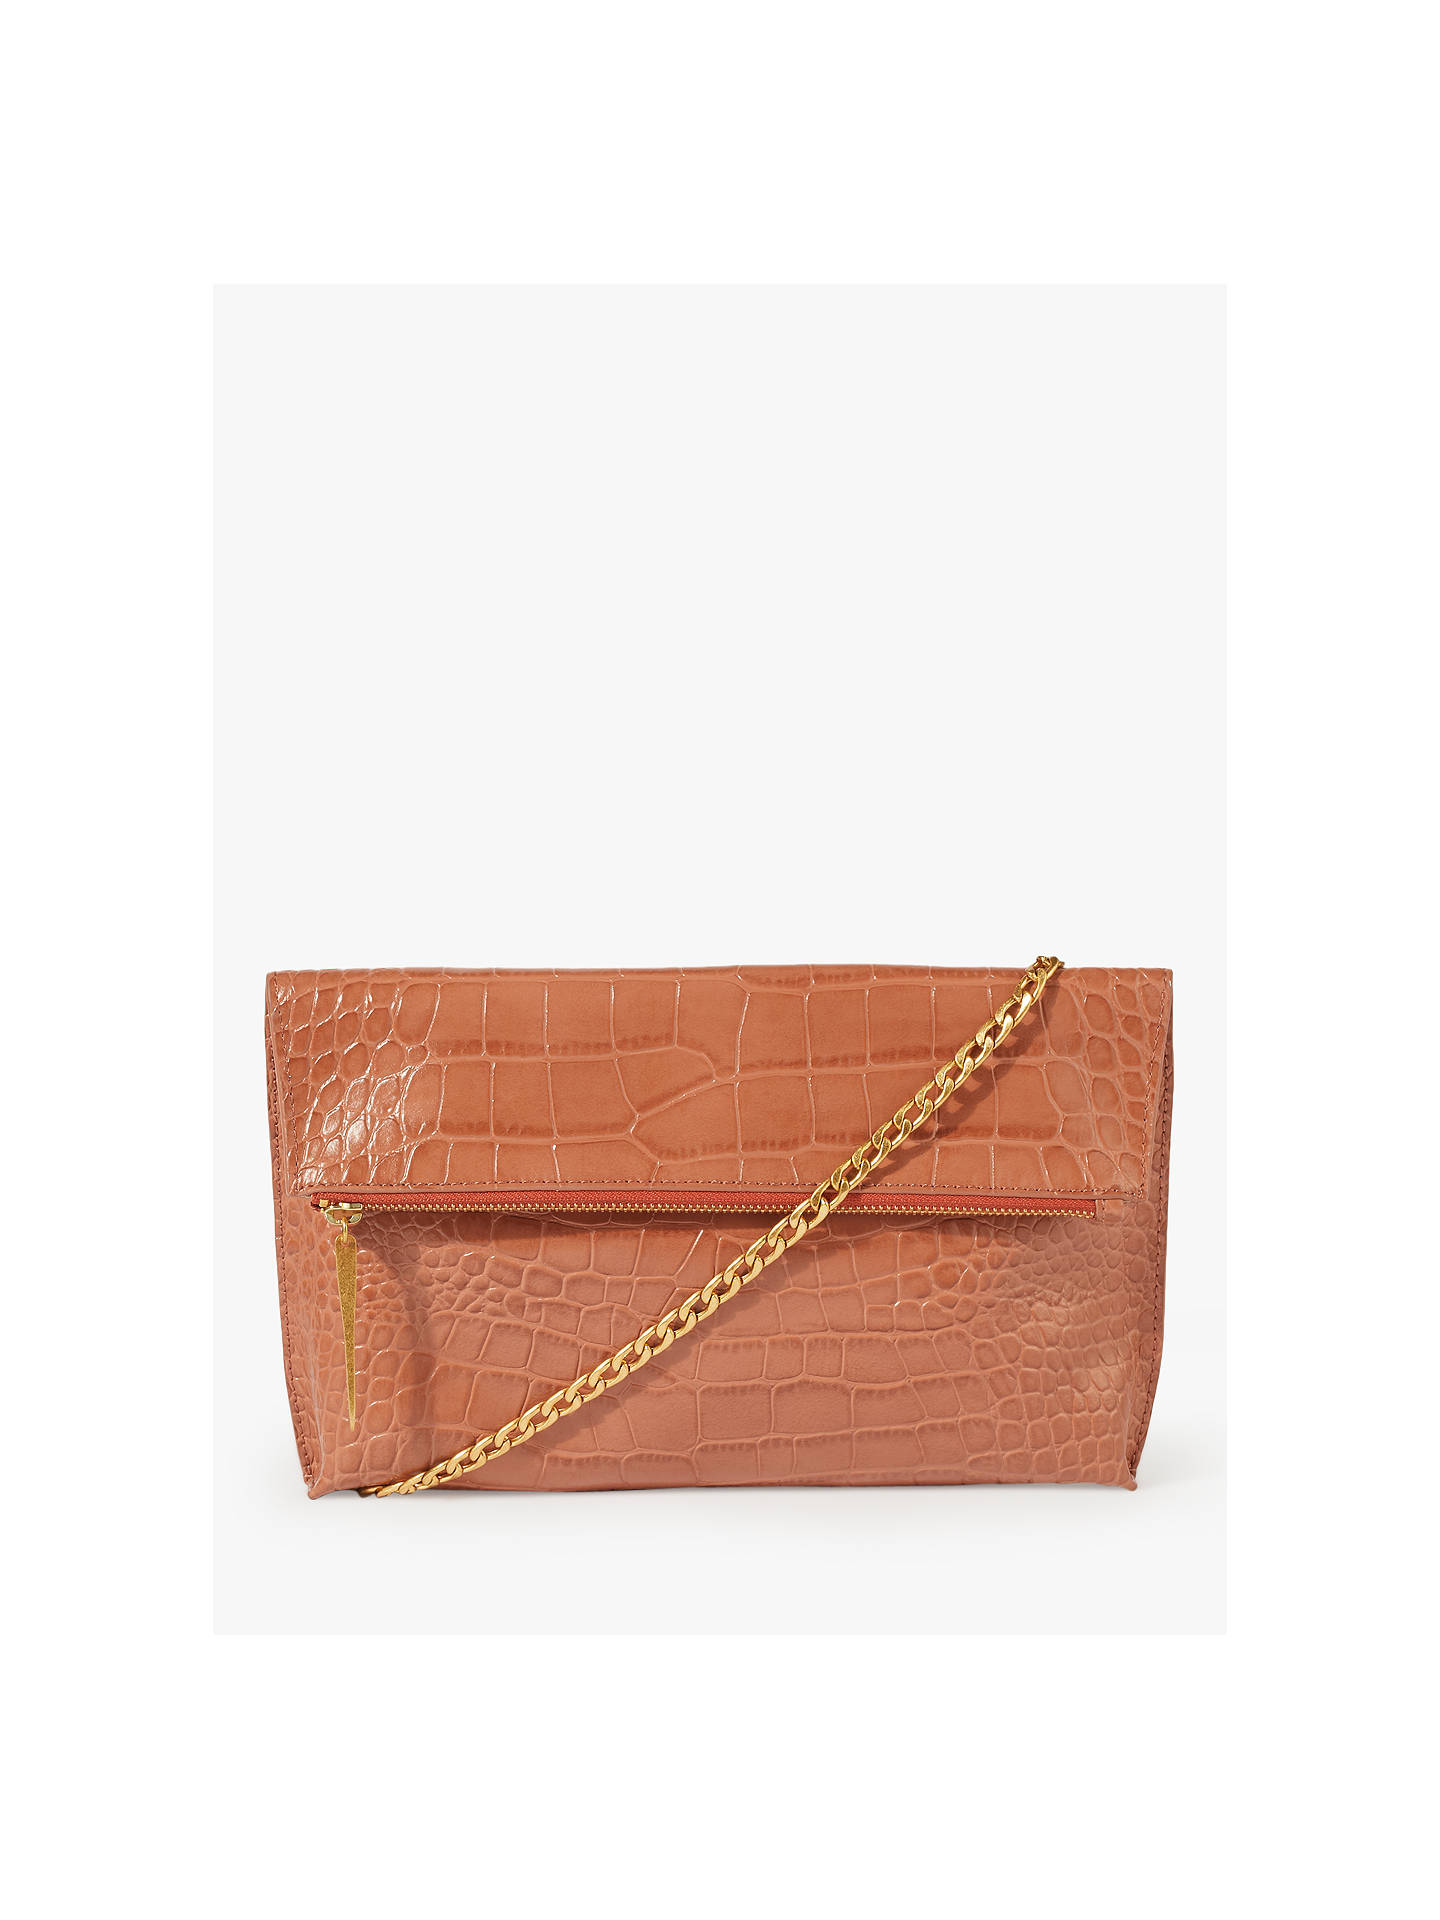 ca26f7b73 Buy Jigsaw Eve Croc Embossed Leather Foldover Clutch Bag, Terracotta Online  at johnlewis.com ...